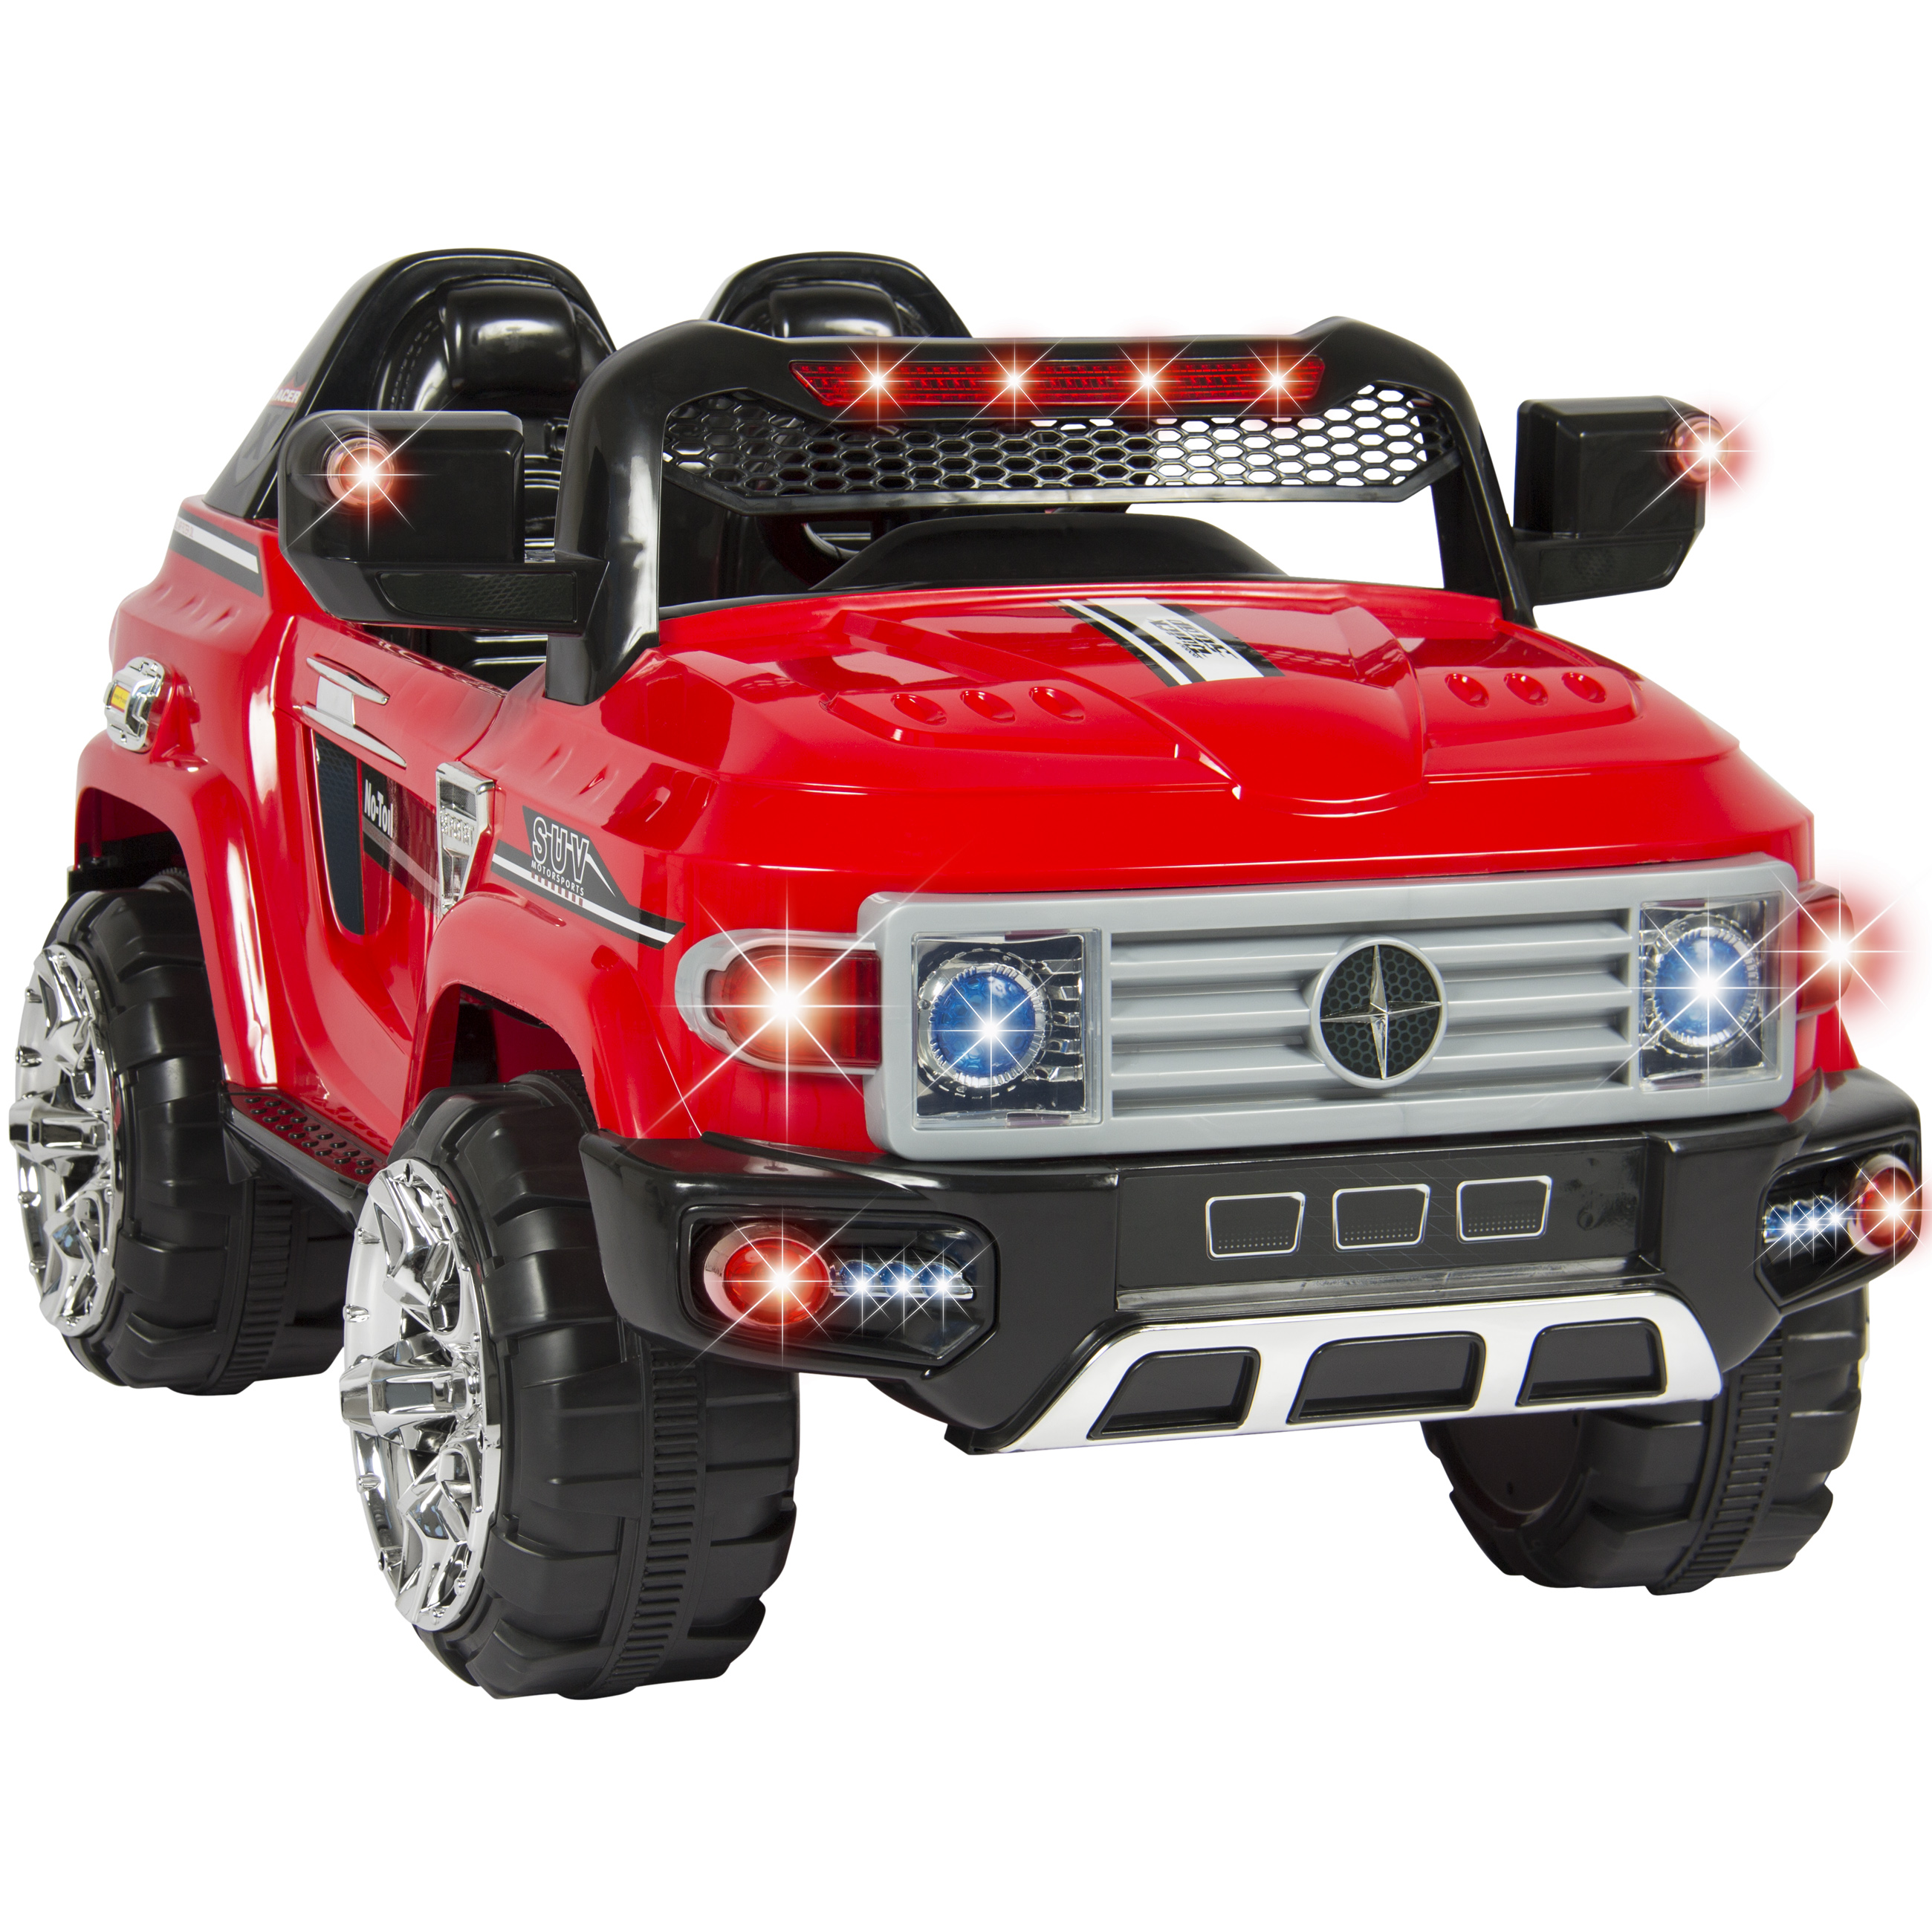 best choice products 12v kids rc remote control truck suv ride on car w 2 speeds led lights mp3 aux cord red walmart